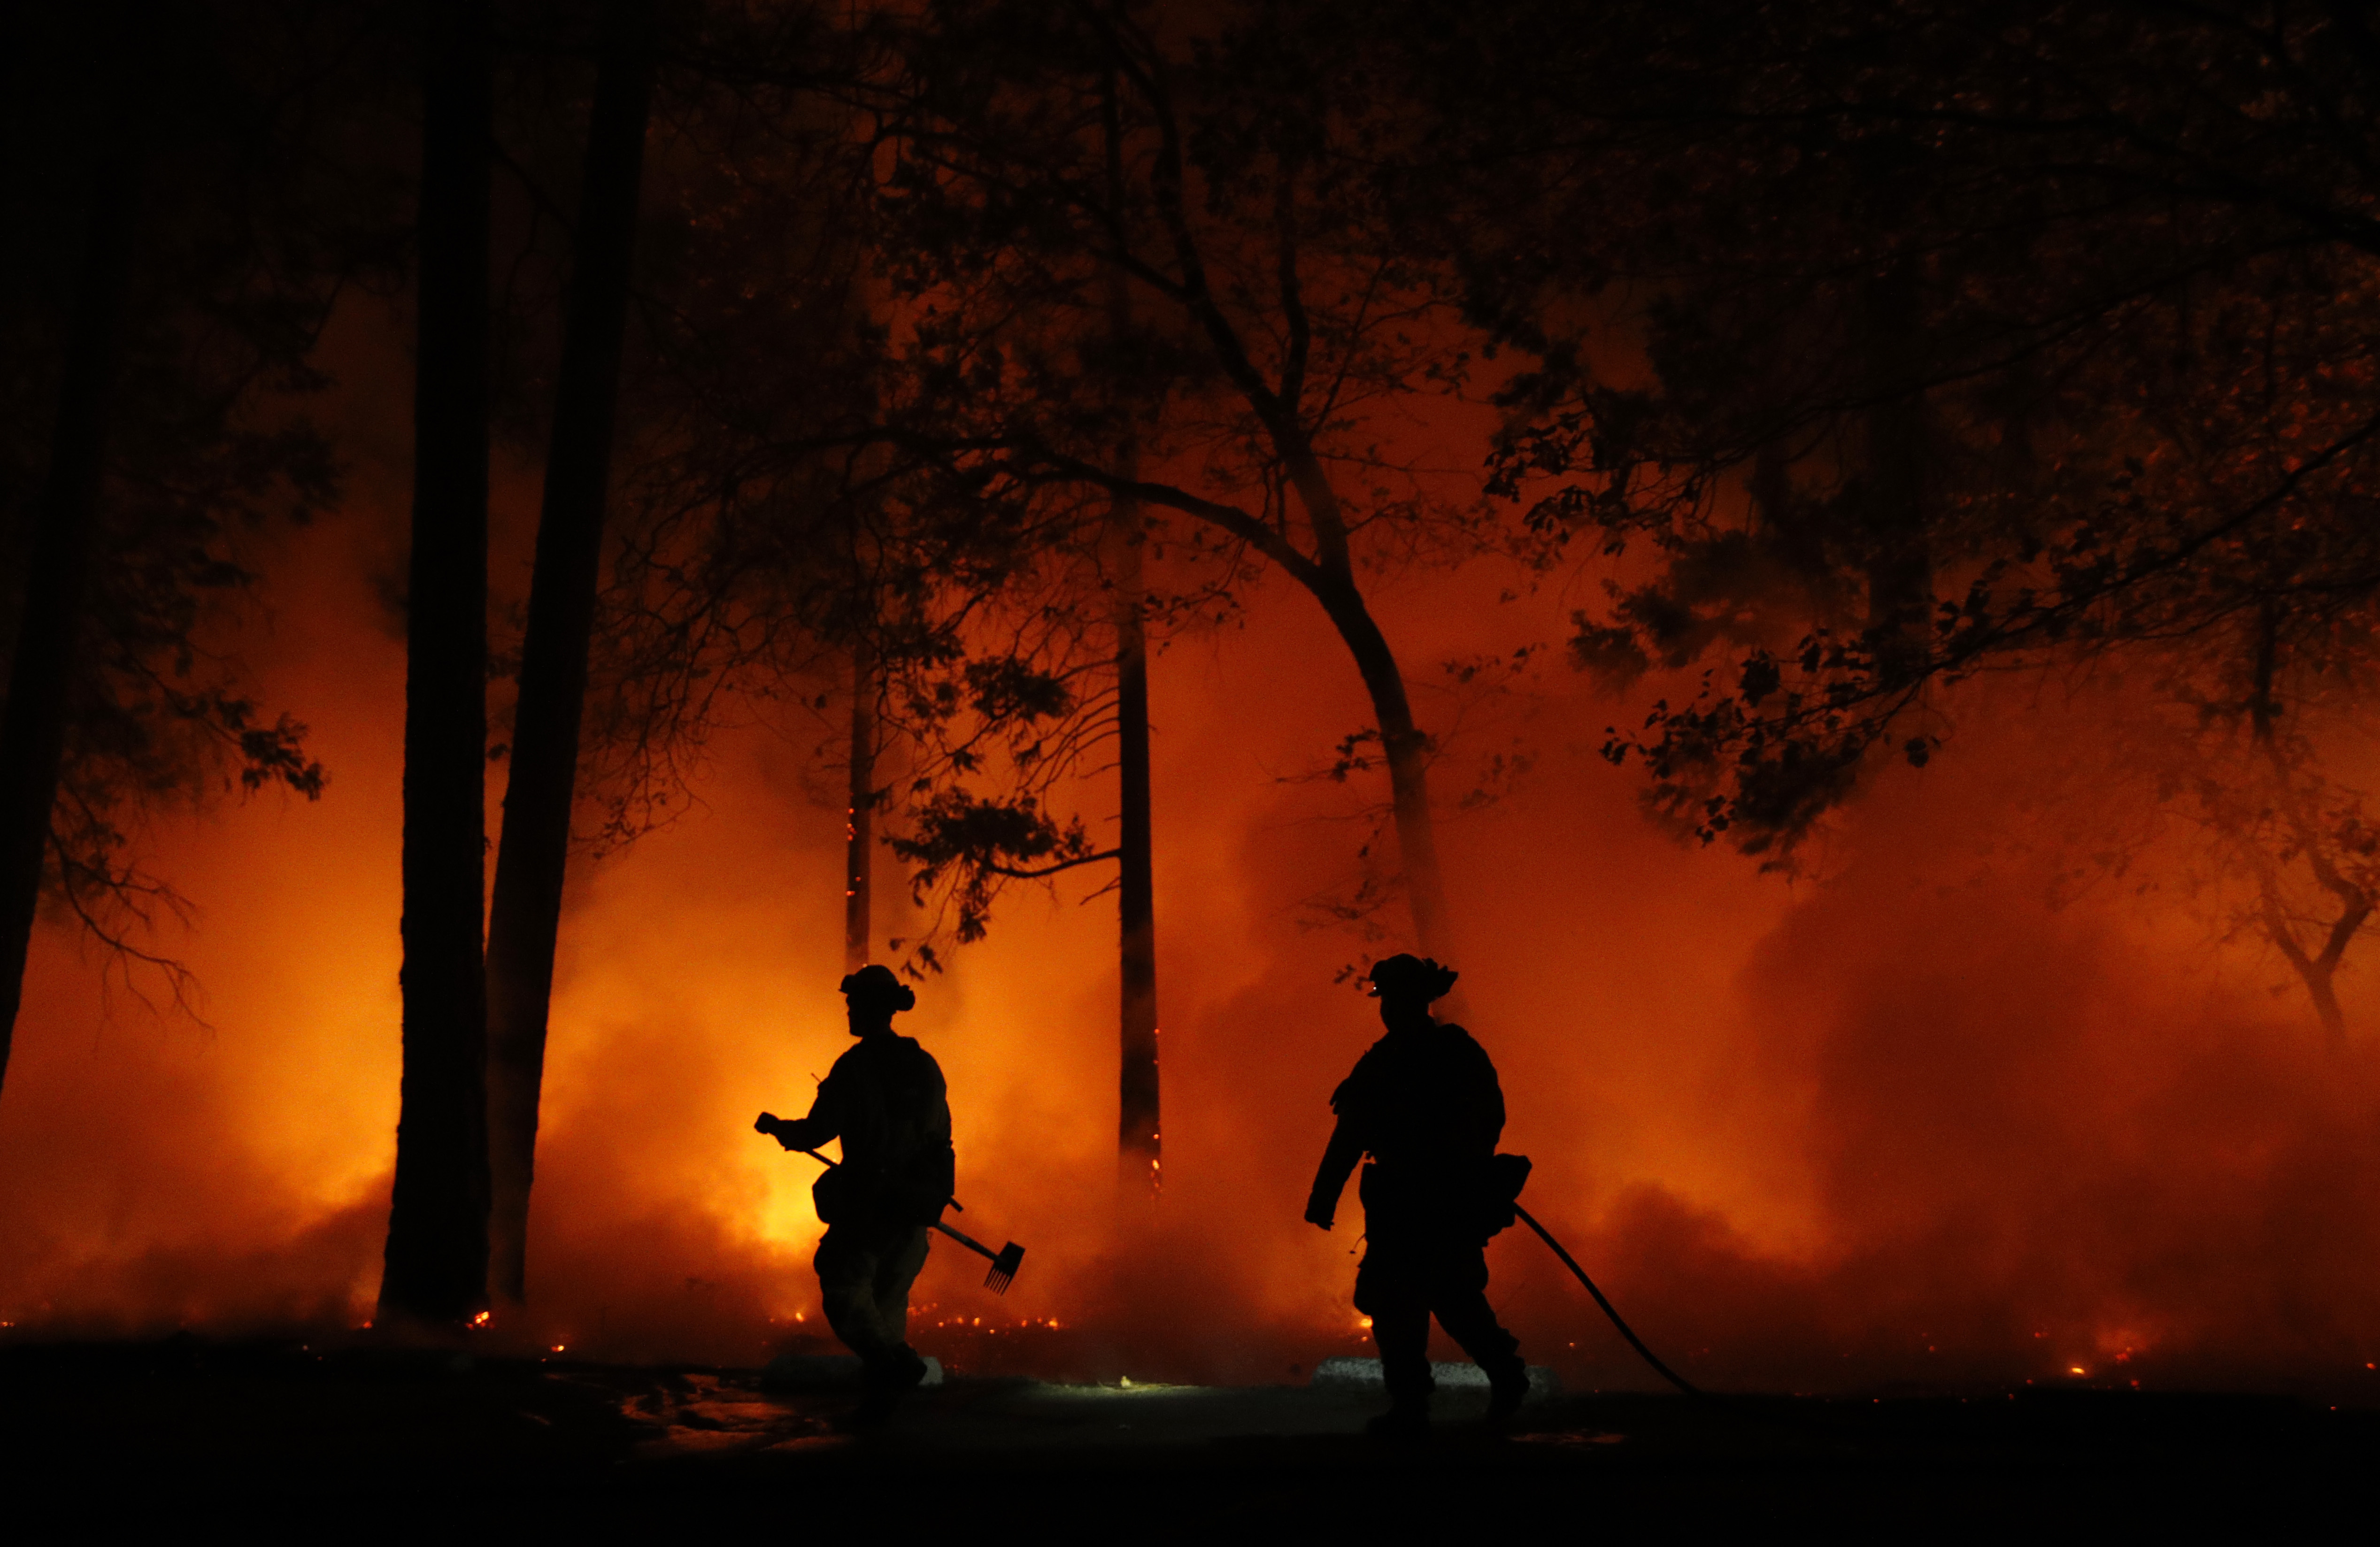 Firefighters work on a controlled burn at a wildfire, Friday, Nov. 9, 2018, in Magalia, Calif.